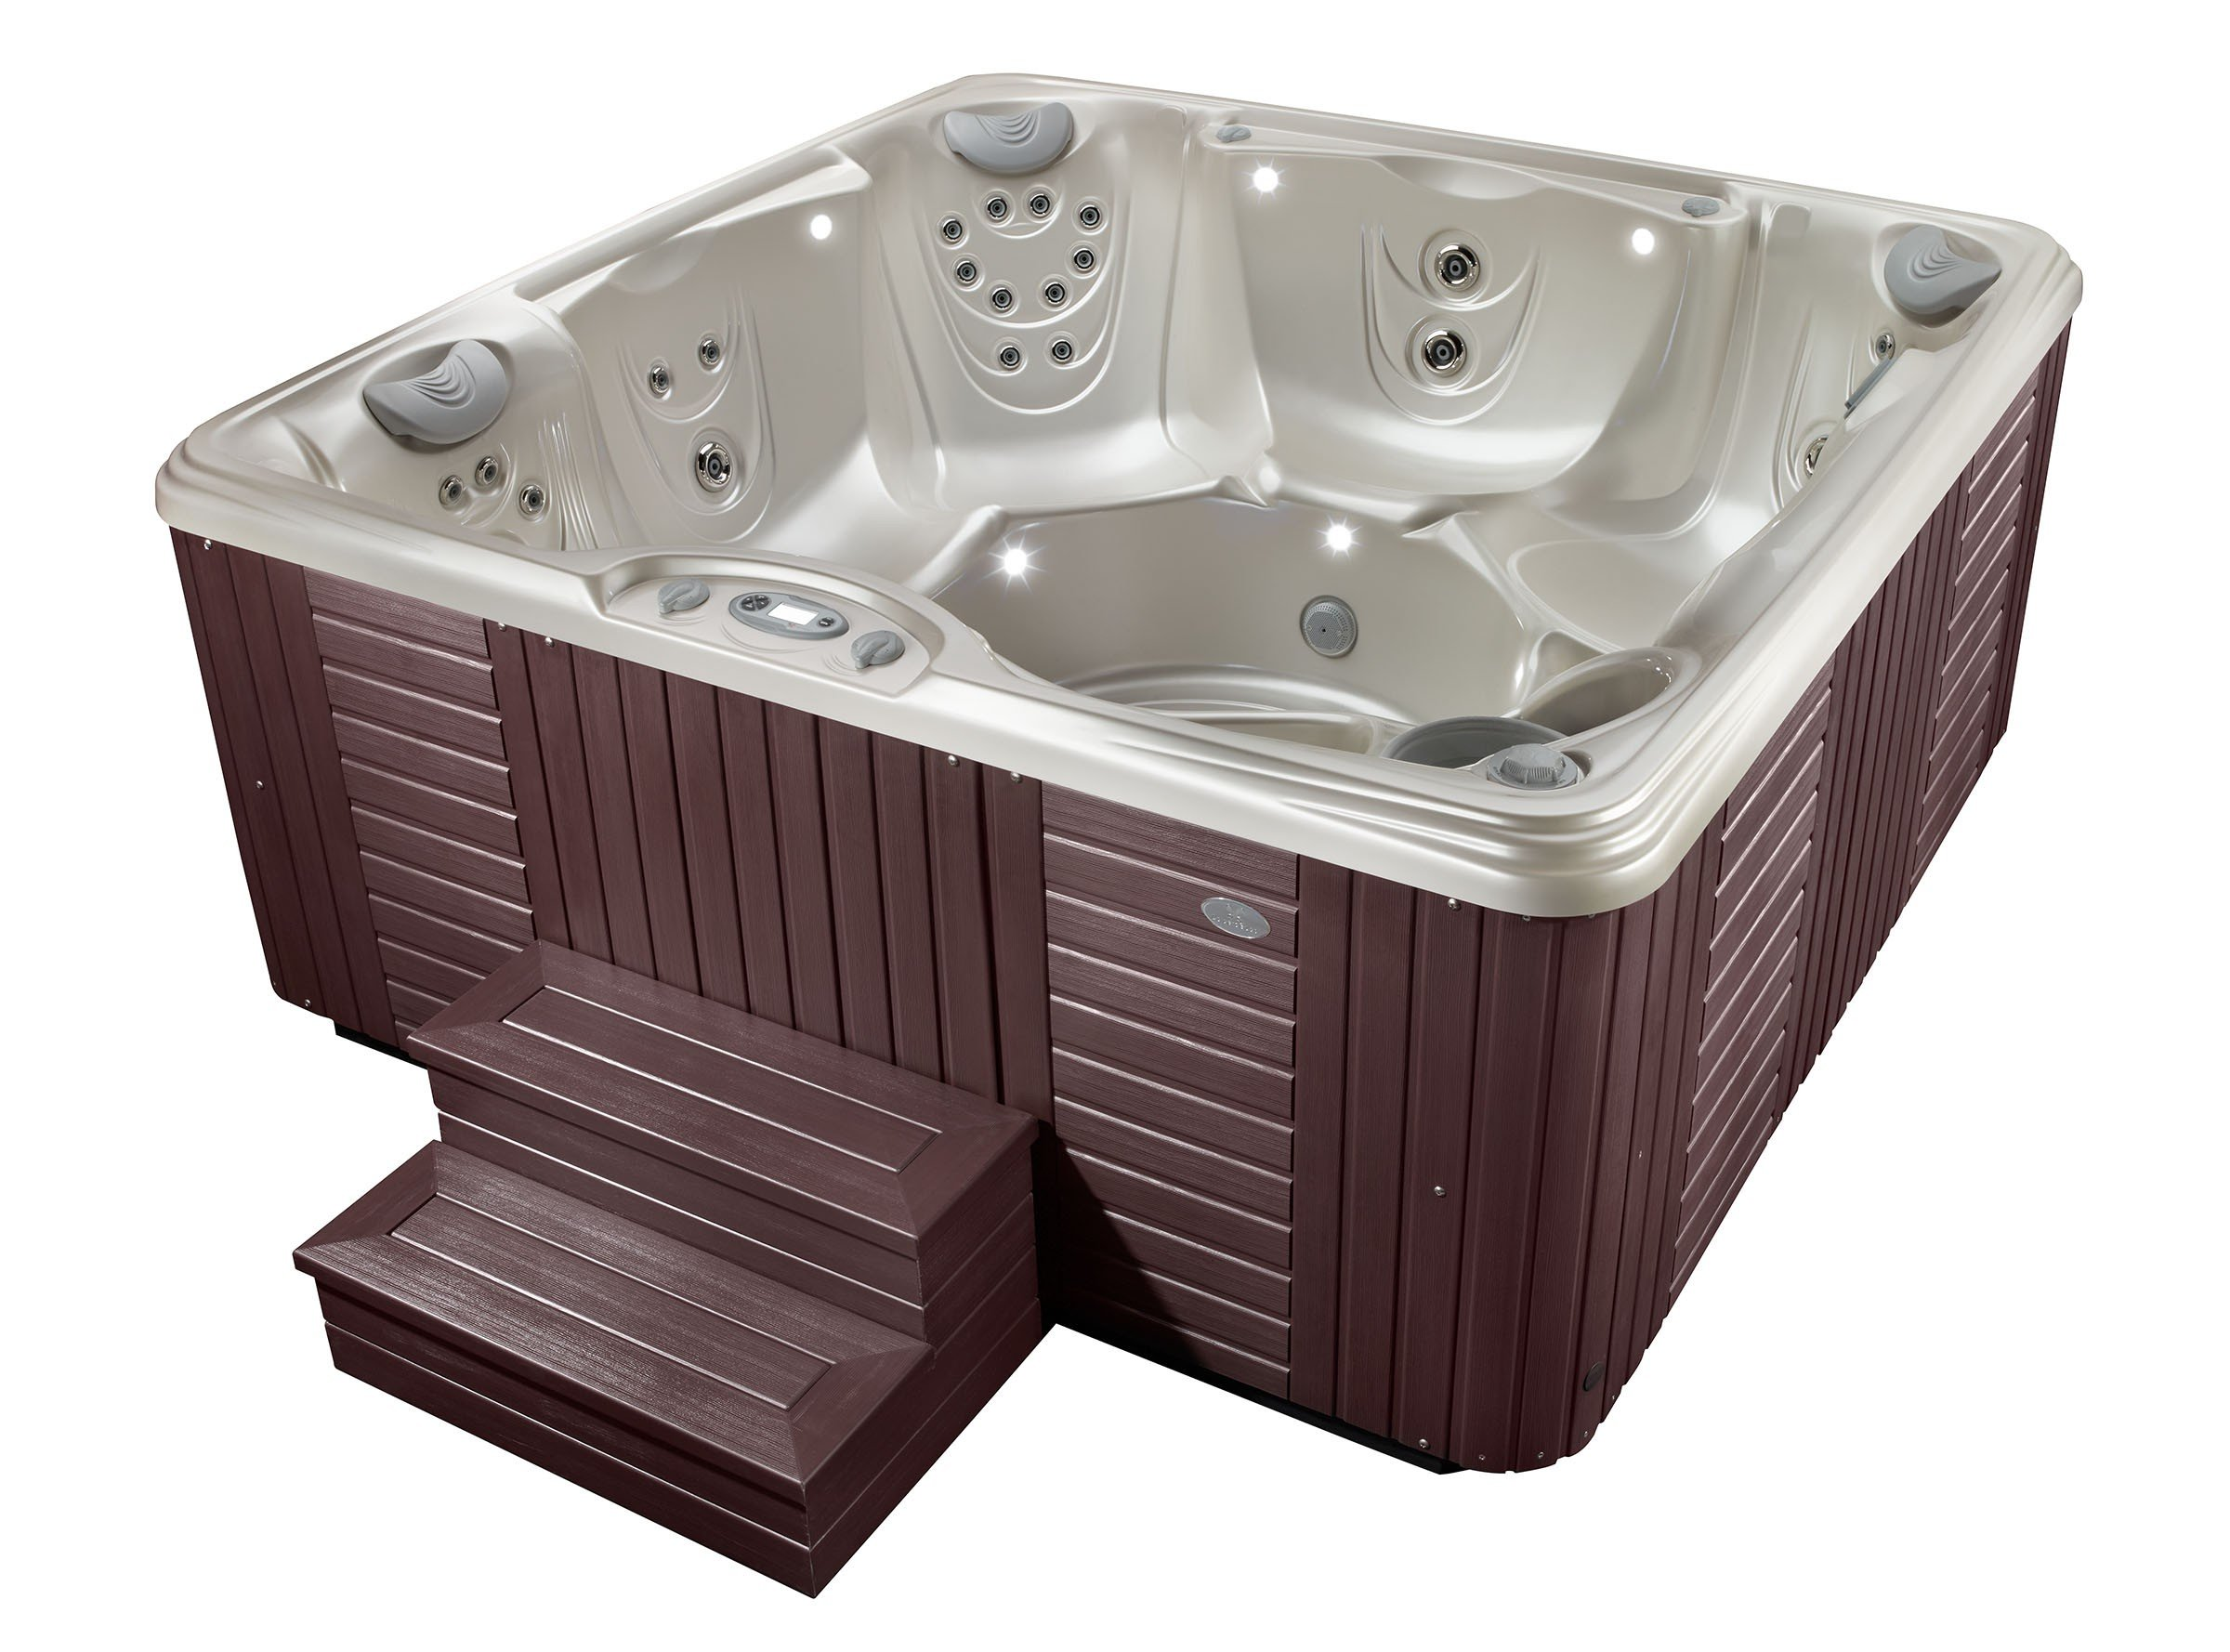 outdoor spa alibaba tub item in improvement plastic whirlpools for person from com home group sale bathtubs on aliexpress portable hot